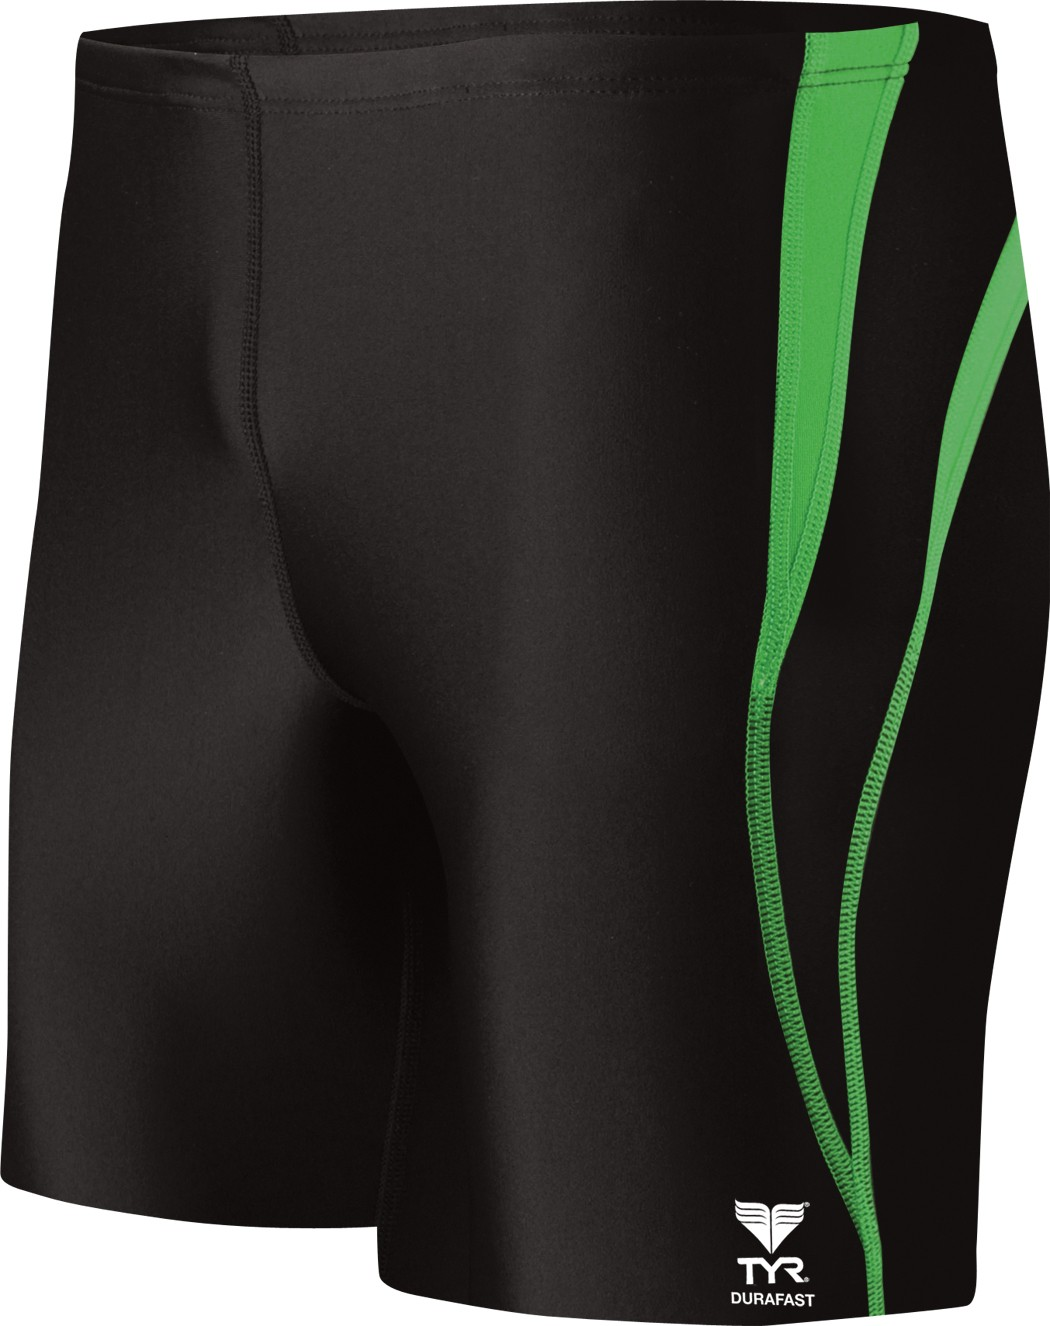 7eba7730a1a68 Men's Durafast One Splice Square Leg Swimsuit | TYR